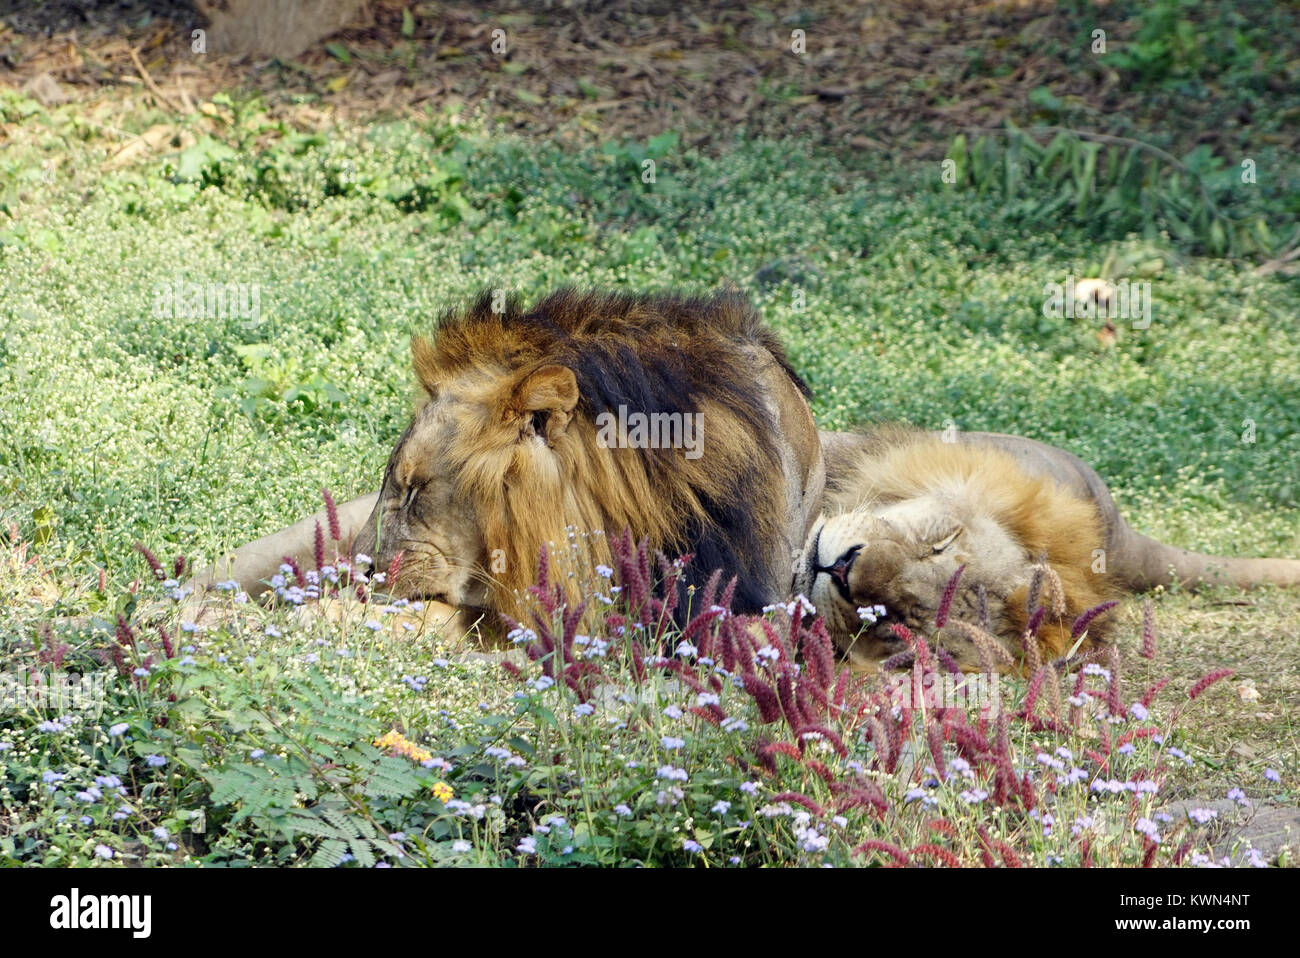 The two lions taking rest in the noon. - Stock Image